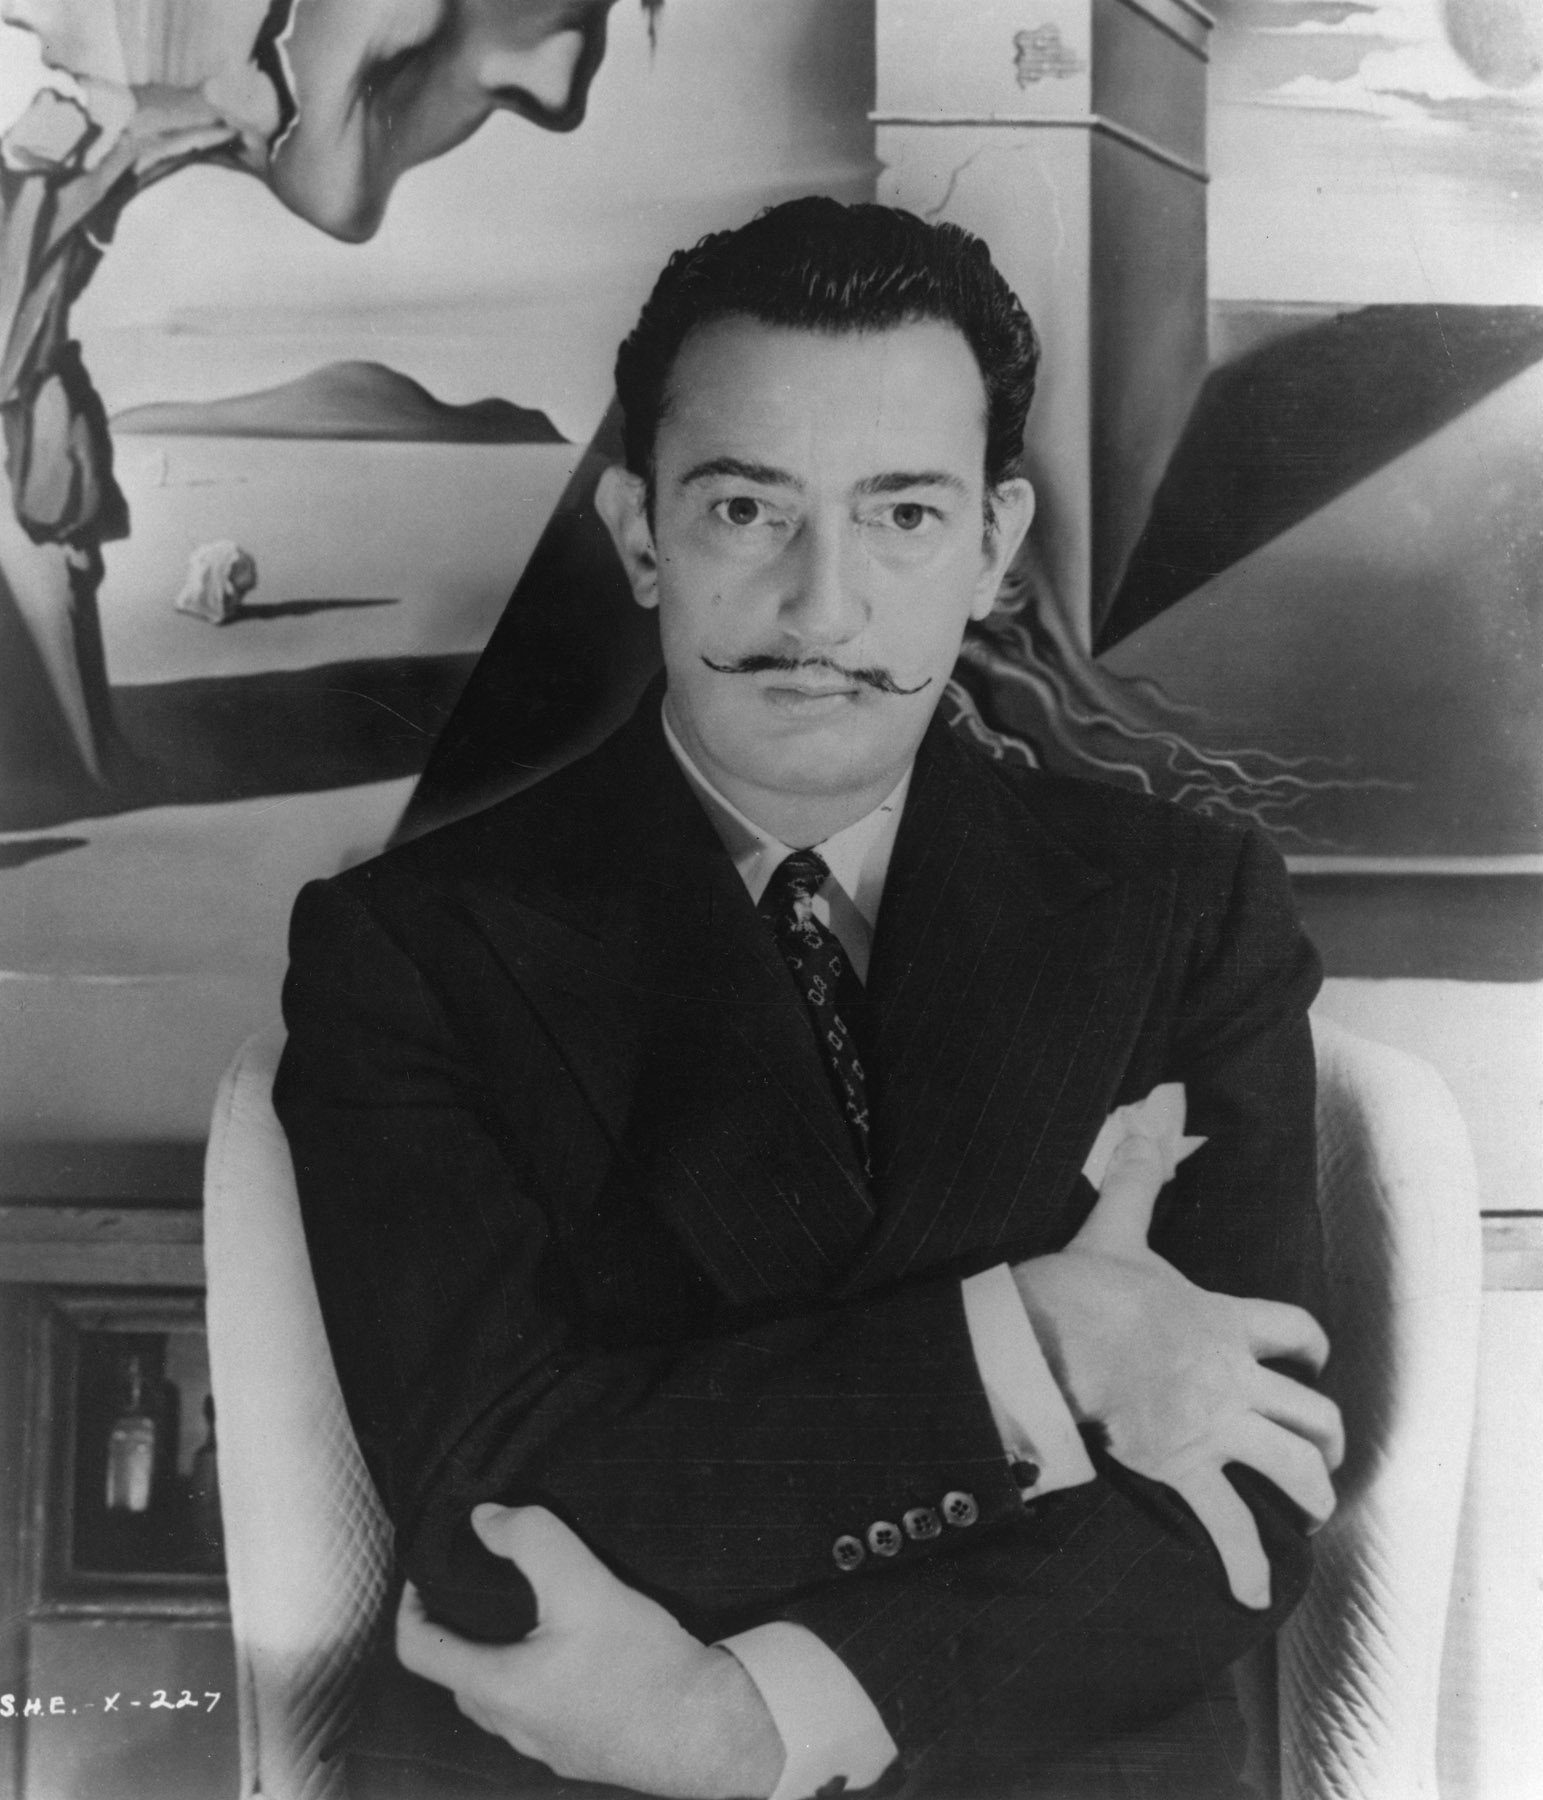 Dali on the set of the film 'Spellbound'